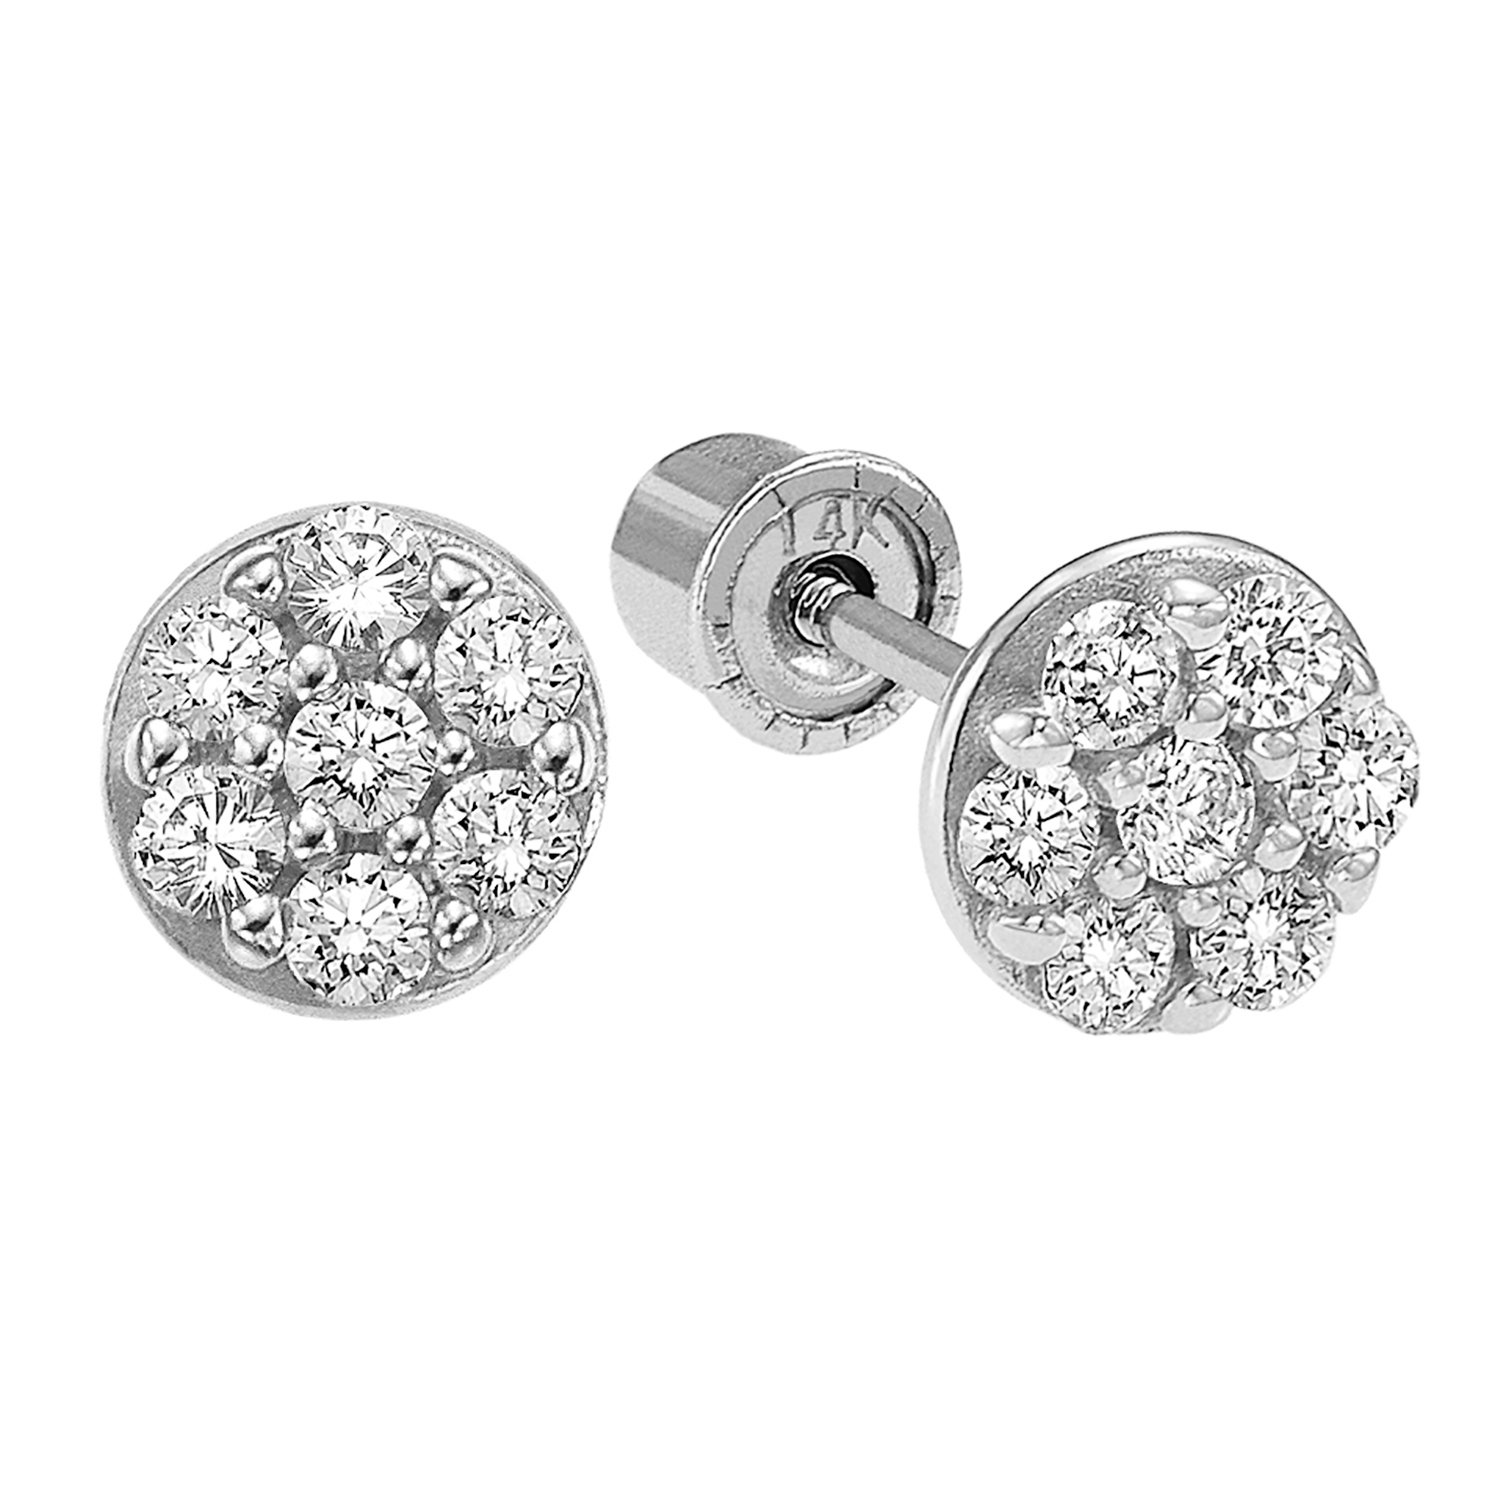 14k Gold Small Round CZ Stud Earrings with Secure Screwbacks